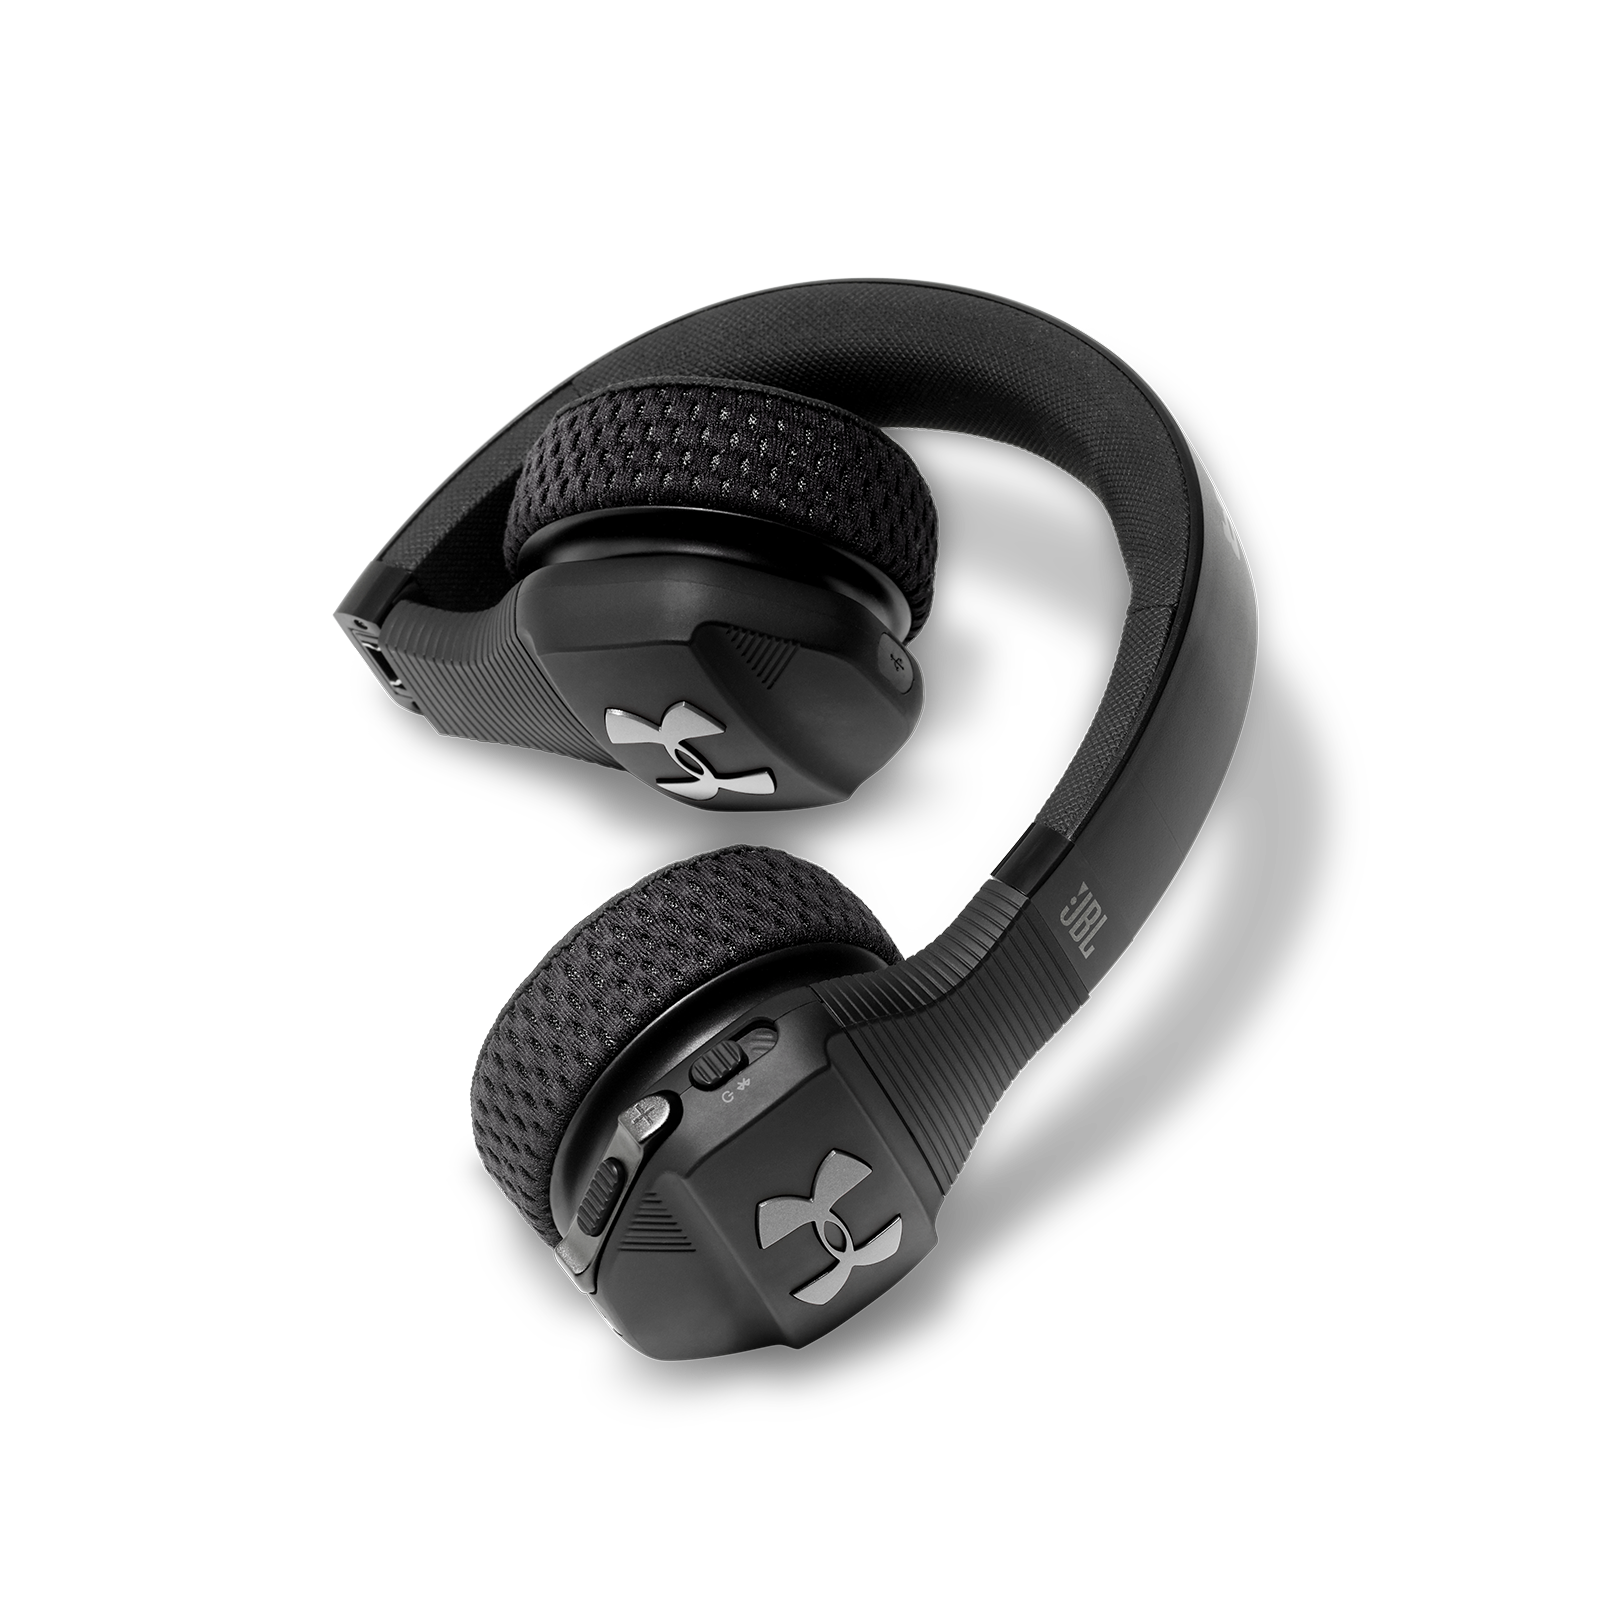 UA Sport Wireless Train – Engineered by JBL - Black - Wireless on-ear headphone built for the gym - Detailshot 2